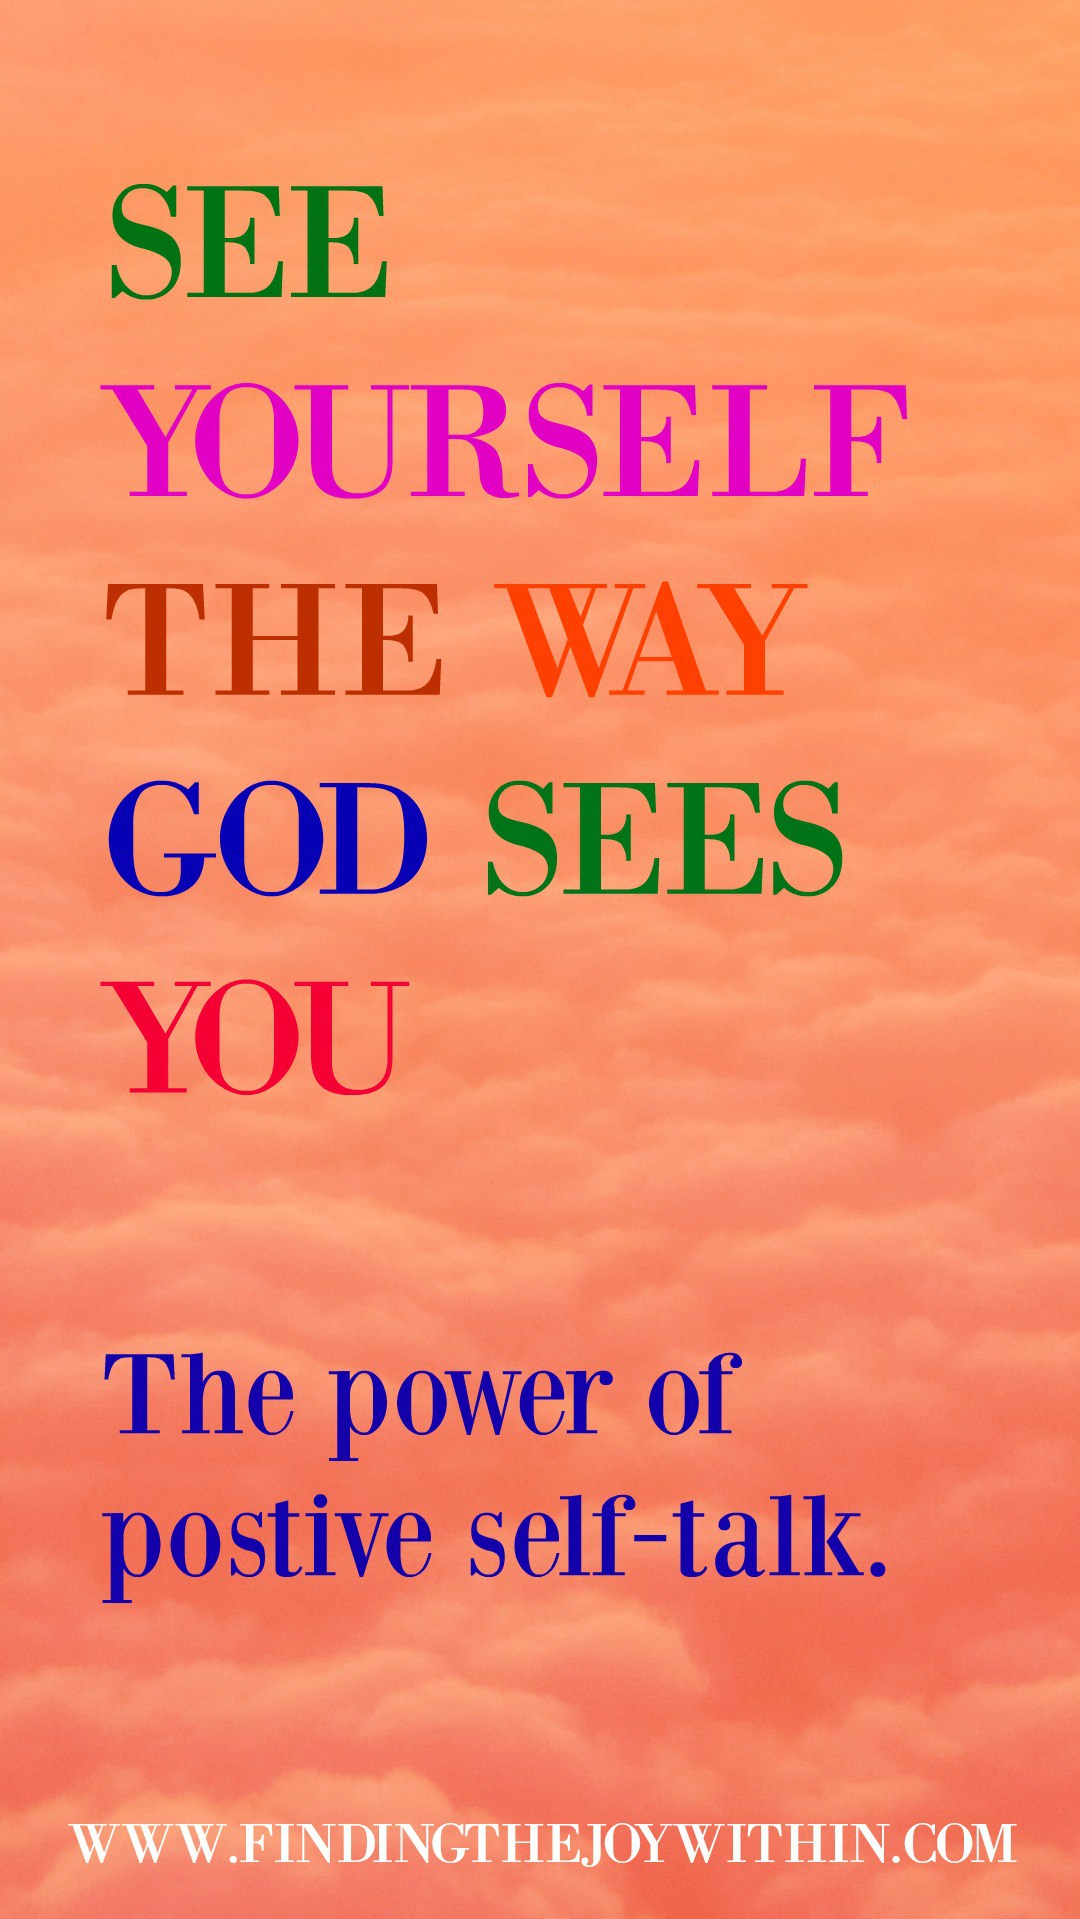 See Yourself The Way God Sees You! (The power of positive self-talk)